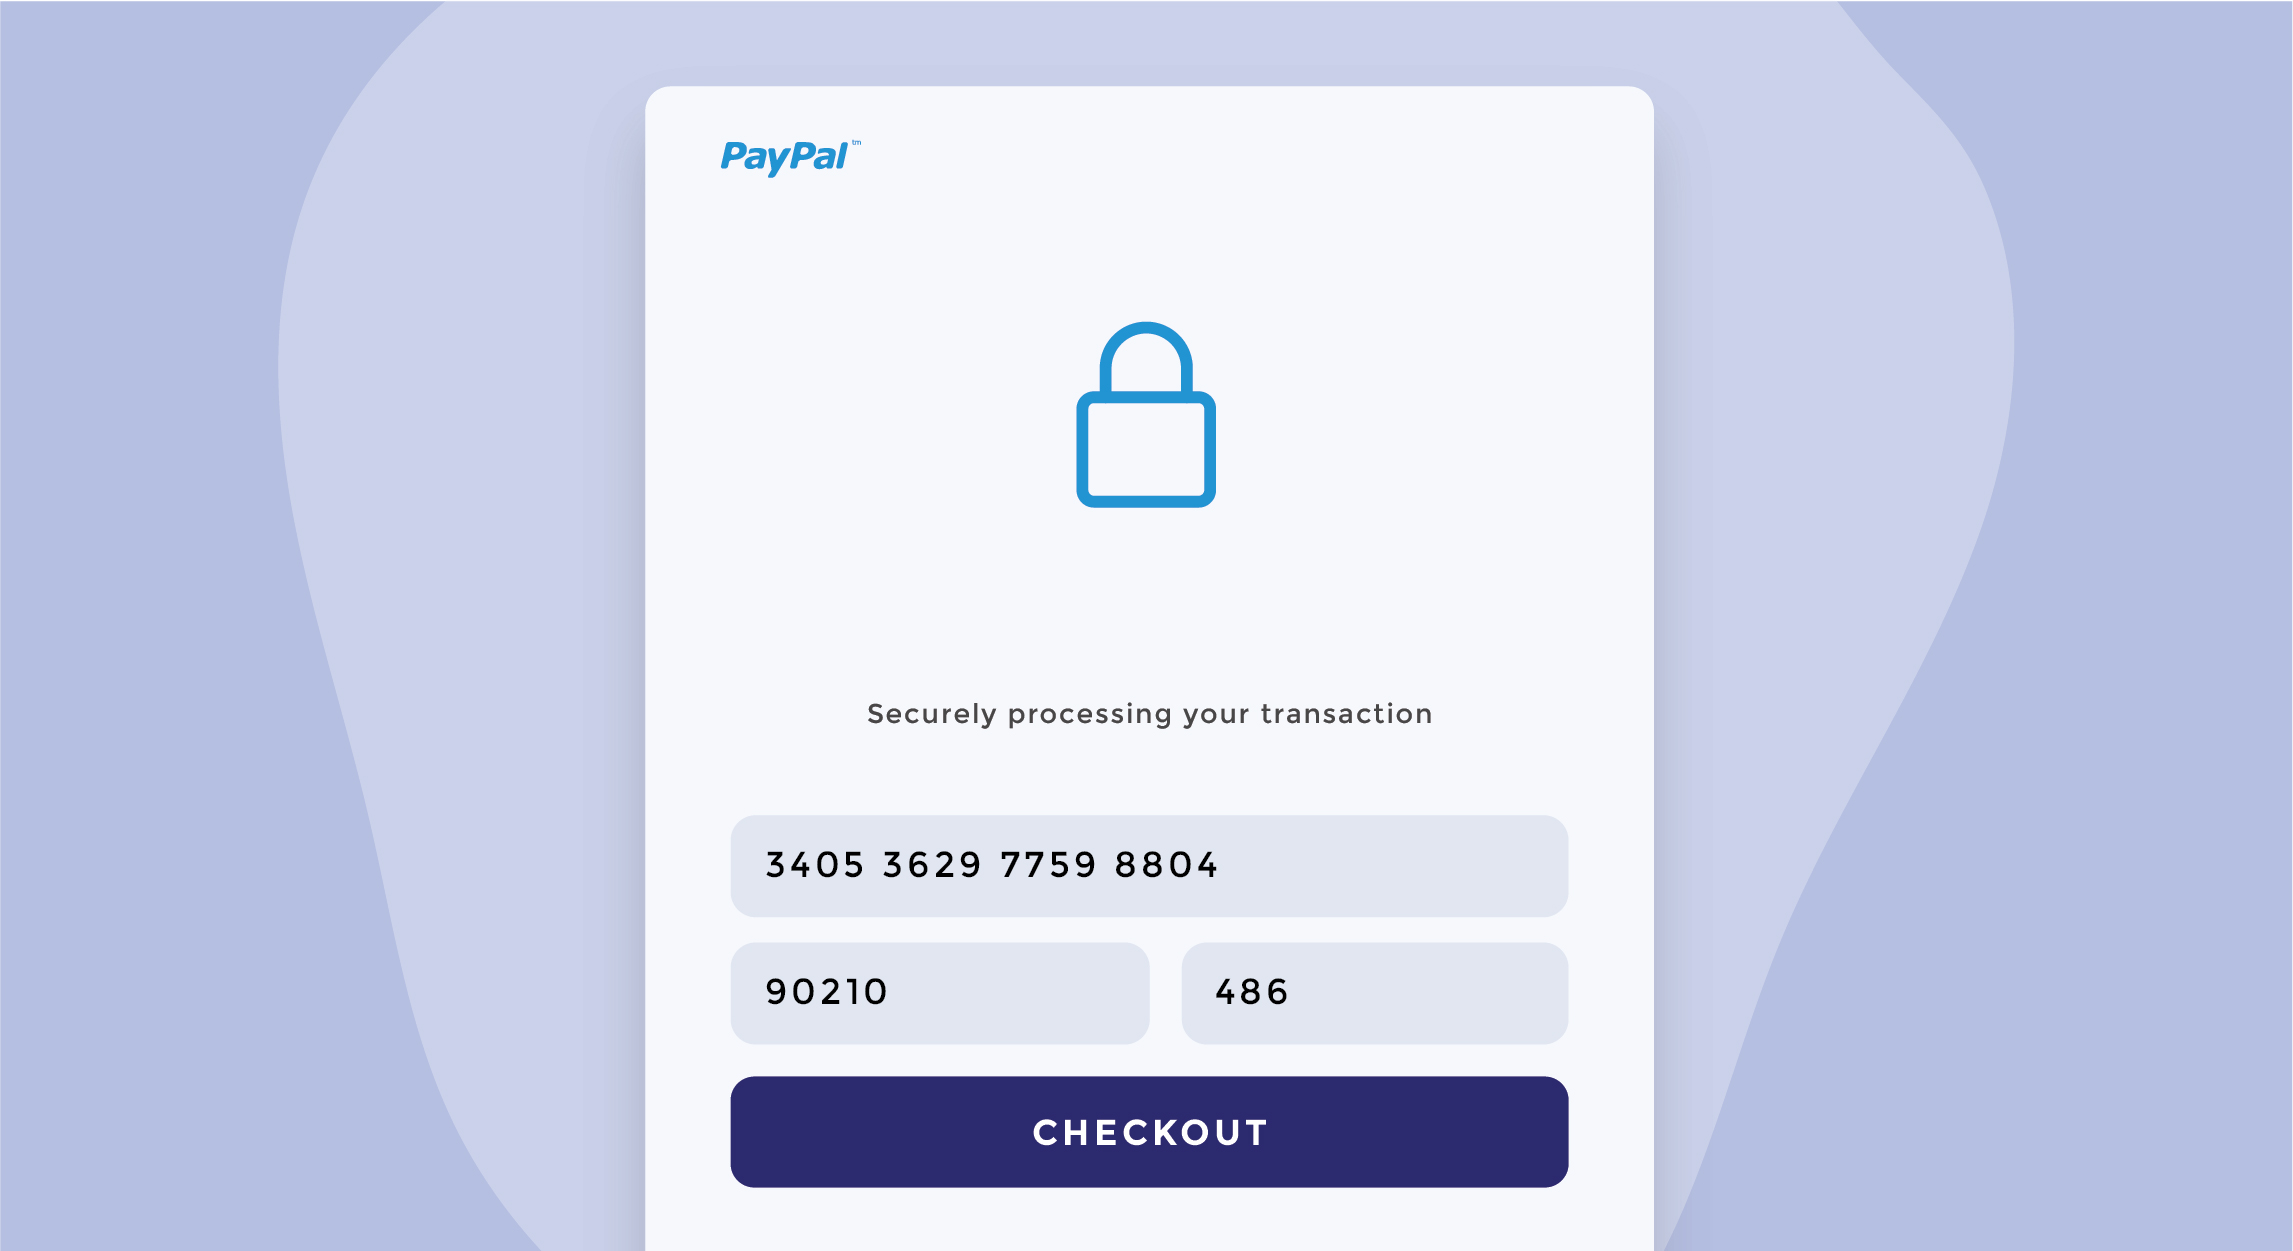 Illustration of PayPal payment section for securely processing a transaction